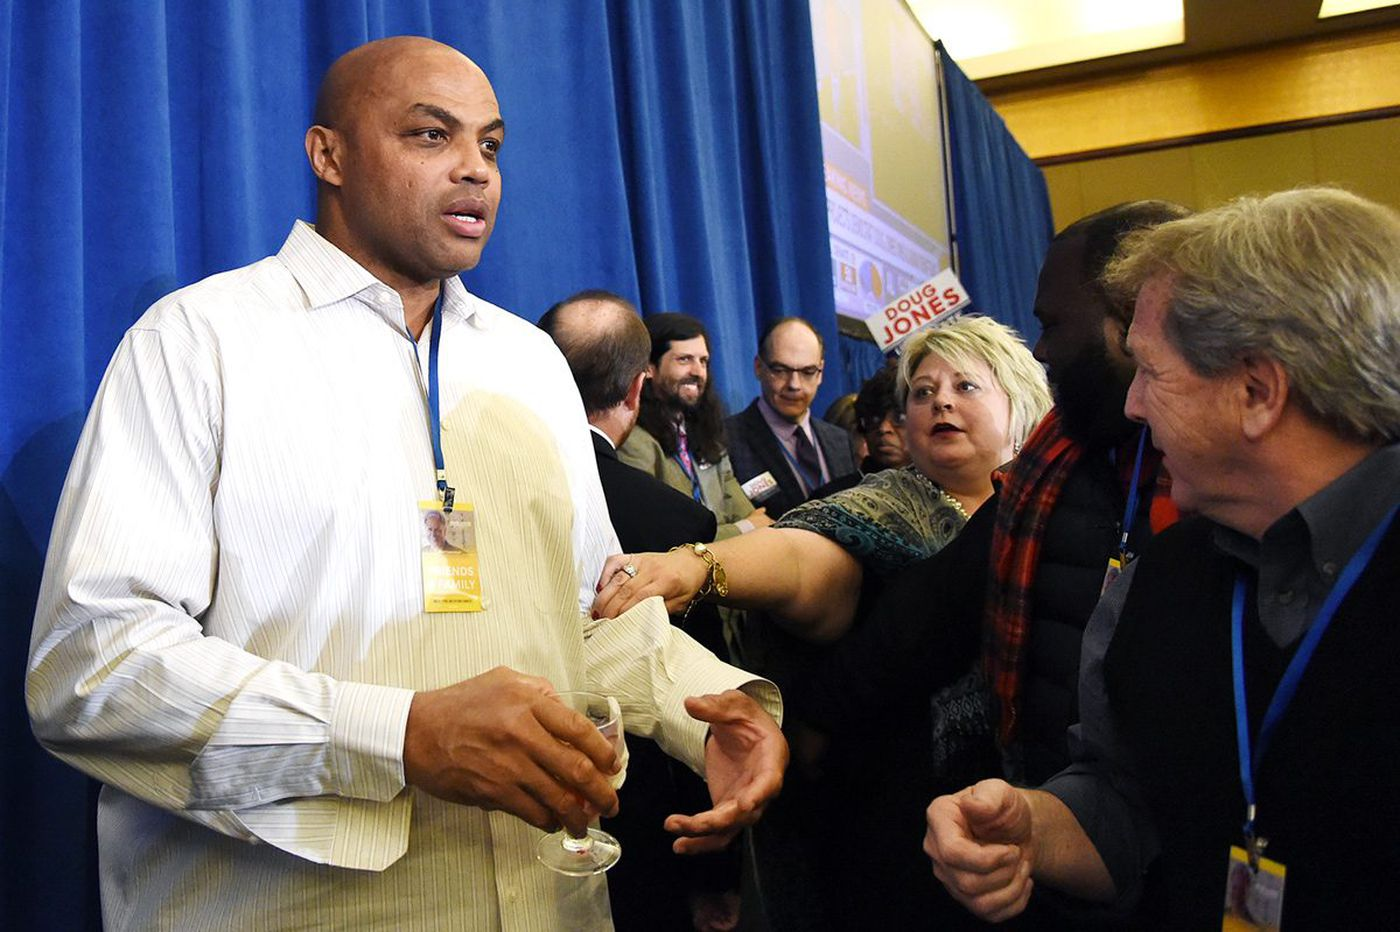 Charles Barkley's political commentary: Another winner in Alabama's special election